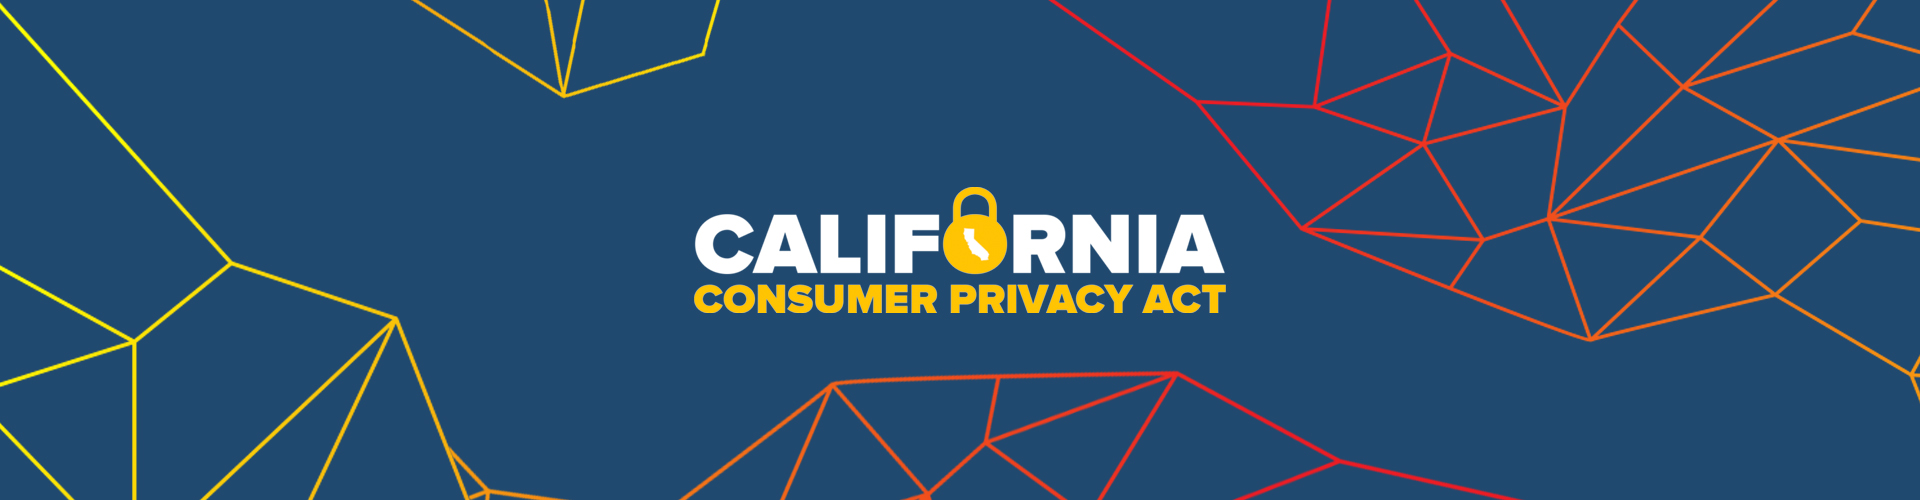 What Does the California Consumer Privacy Act Mean (CCPA)?